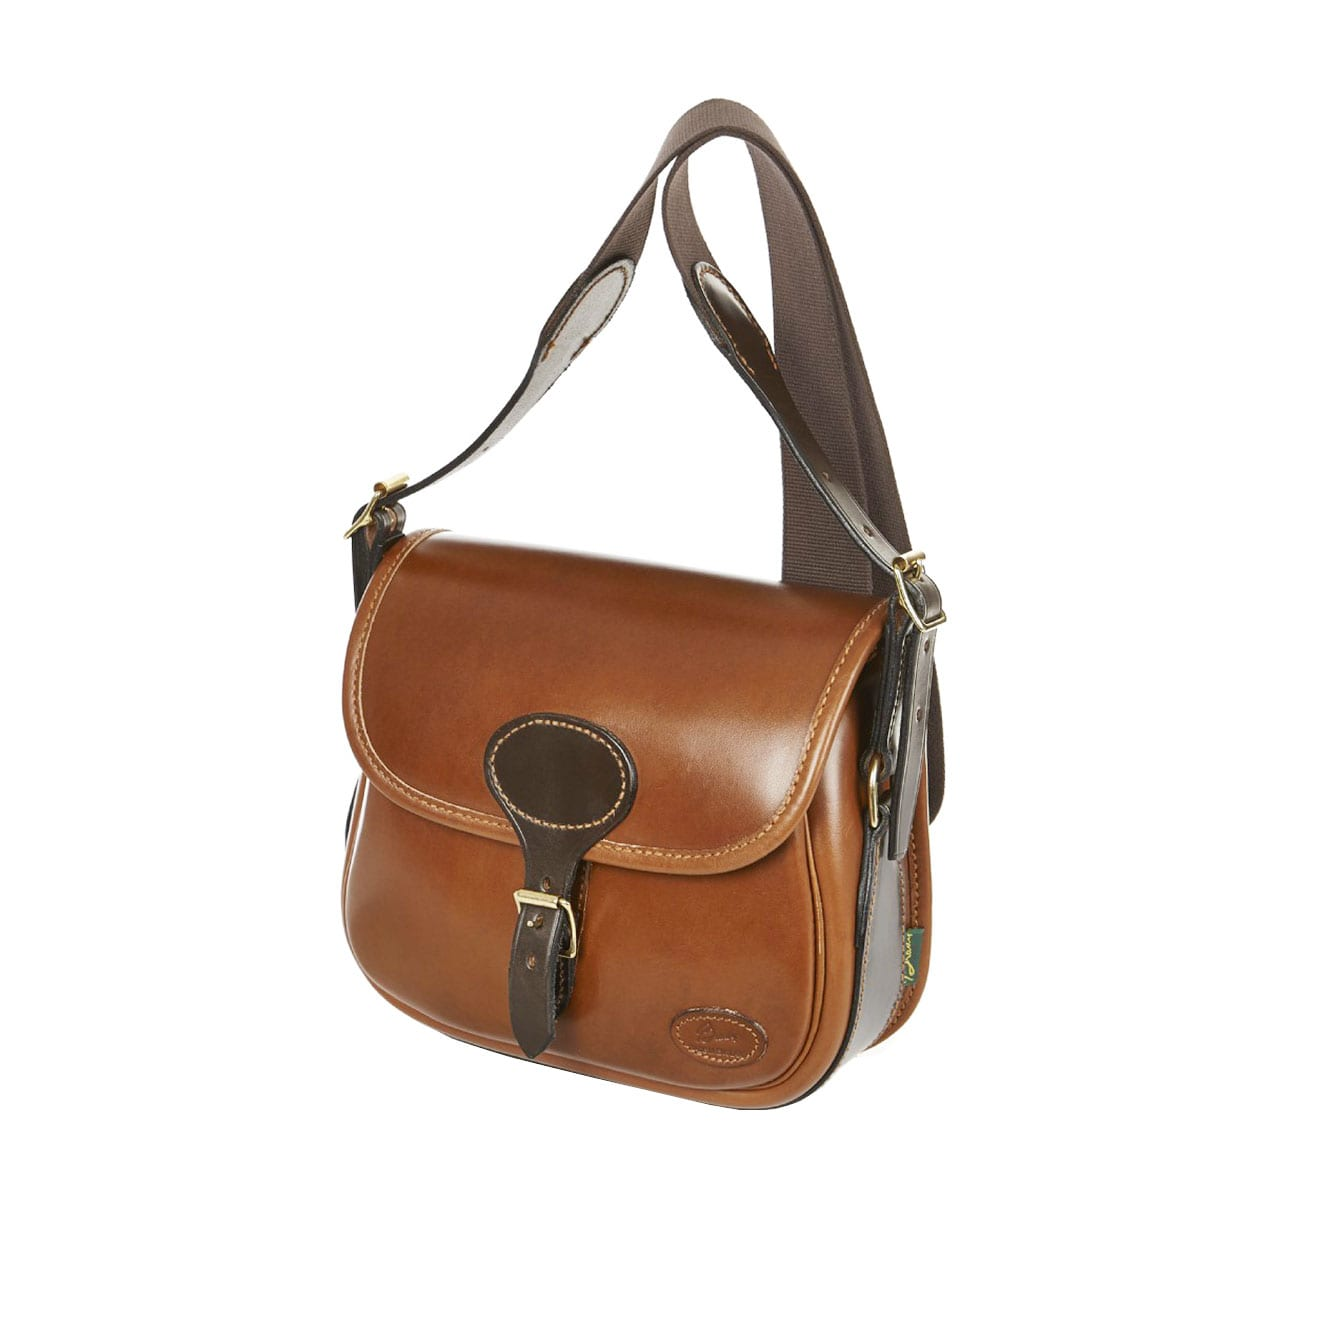 Brady Forest Quick Load 100 Cartridge Bag Brown   Tan - The Sporting ...